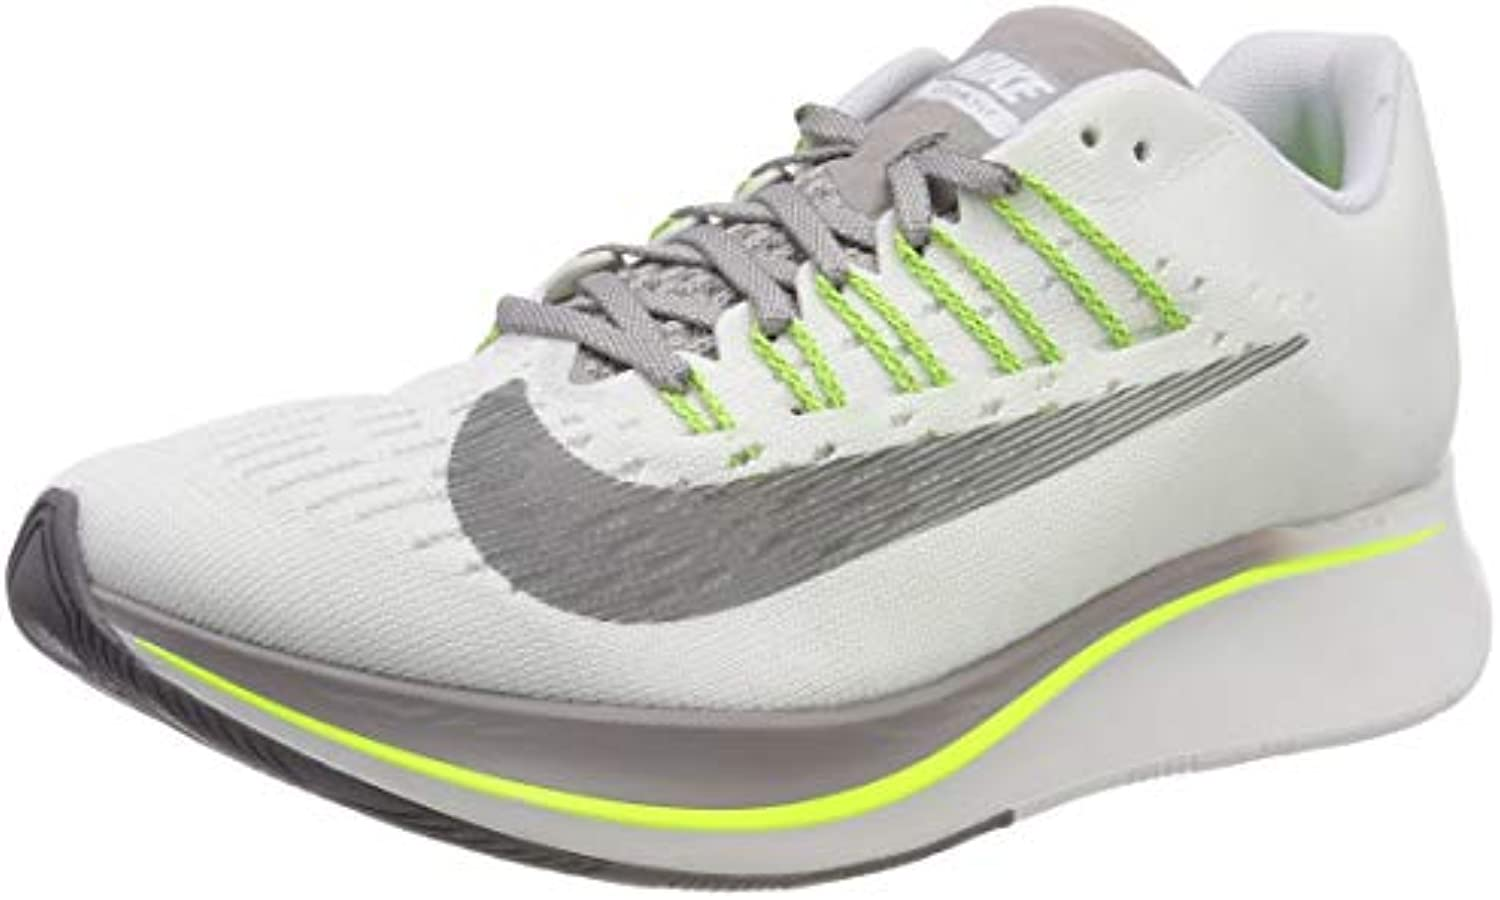 Nike Wmns Zoom Fly, Fly, Fly, Scarpe Running Donna | prendere in considerazione  d665f4